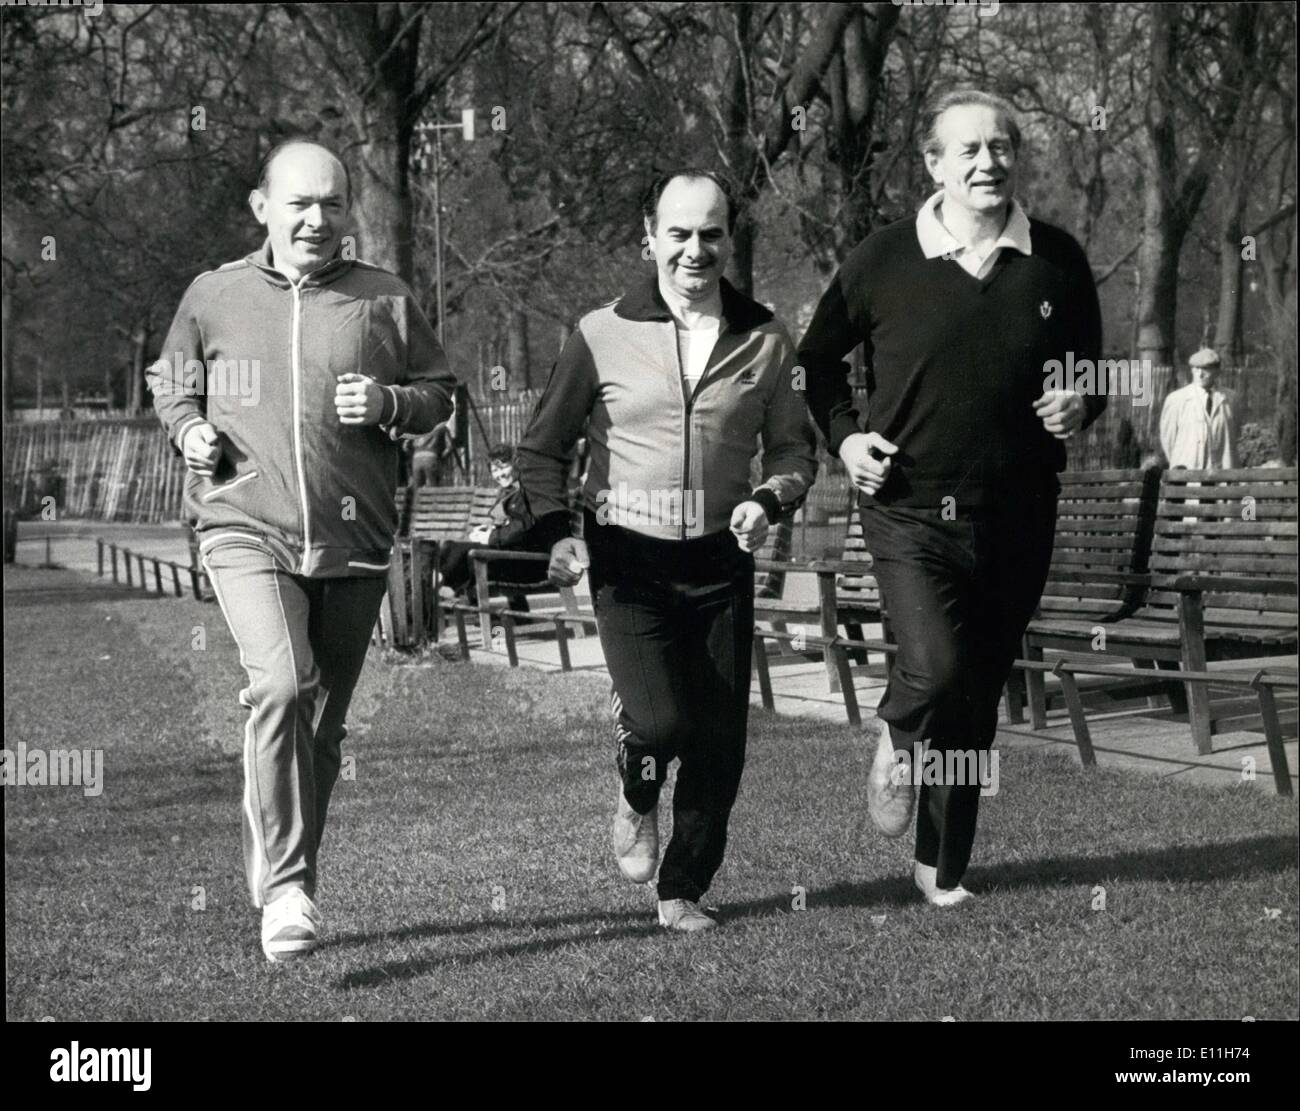 Mar. 03, 1978 - Scotland's Heaith Minister Harry Ewing Leads Volunteers In National Fitness Campaign: Harry Ewing MP, Scottish under secretary of state for health, one of the leading participants of a new campaign to encourage Scots to take more exercise. Its called 'Fit For Life' mounted by the Scottish sports council. Photo shows Seen during a run in St Jame's Park today. L-R Mr Harry Ewing, MP, Under secretary of state for health, Mr Teddy Taylor, MP, shadow secretary of state for Scotland, and Mr Hector Monro, MP, Shadow Scottish Minister for sport. - Stock Image